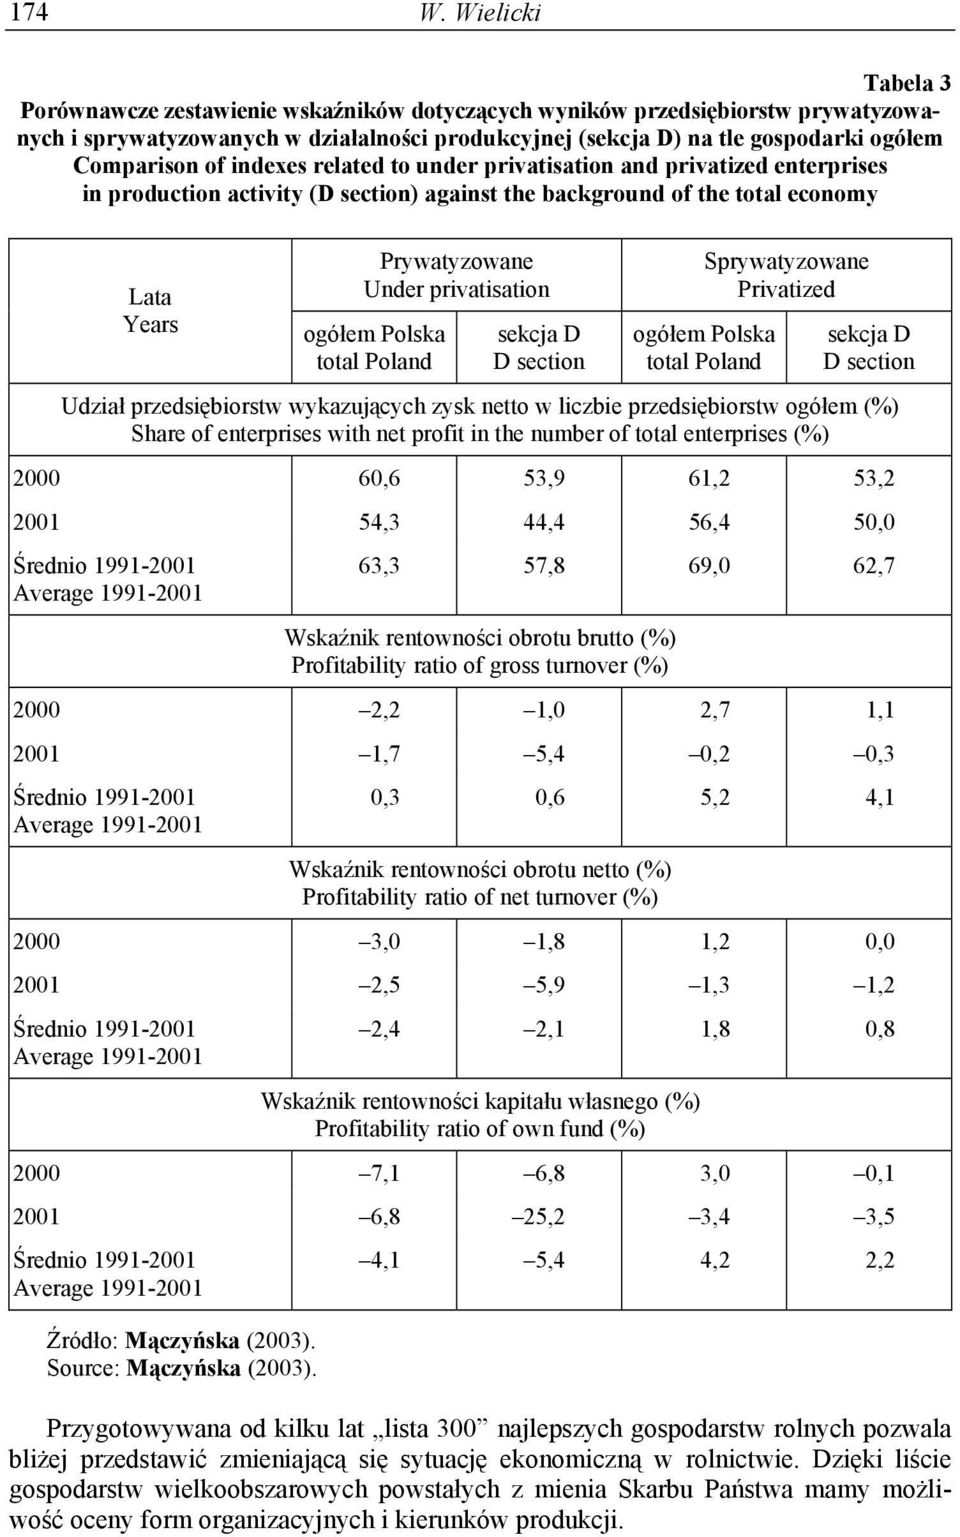 of indexes related to under privatisation and privatized enterprises in production activity (D section) against the background of the total economy Lata Years Prywatyzowane Under privatisation ogółem